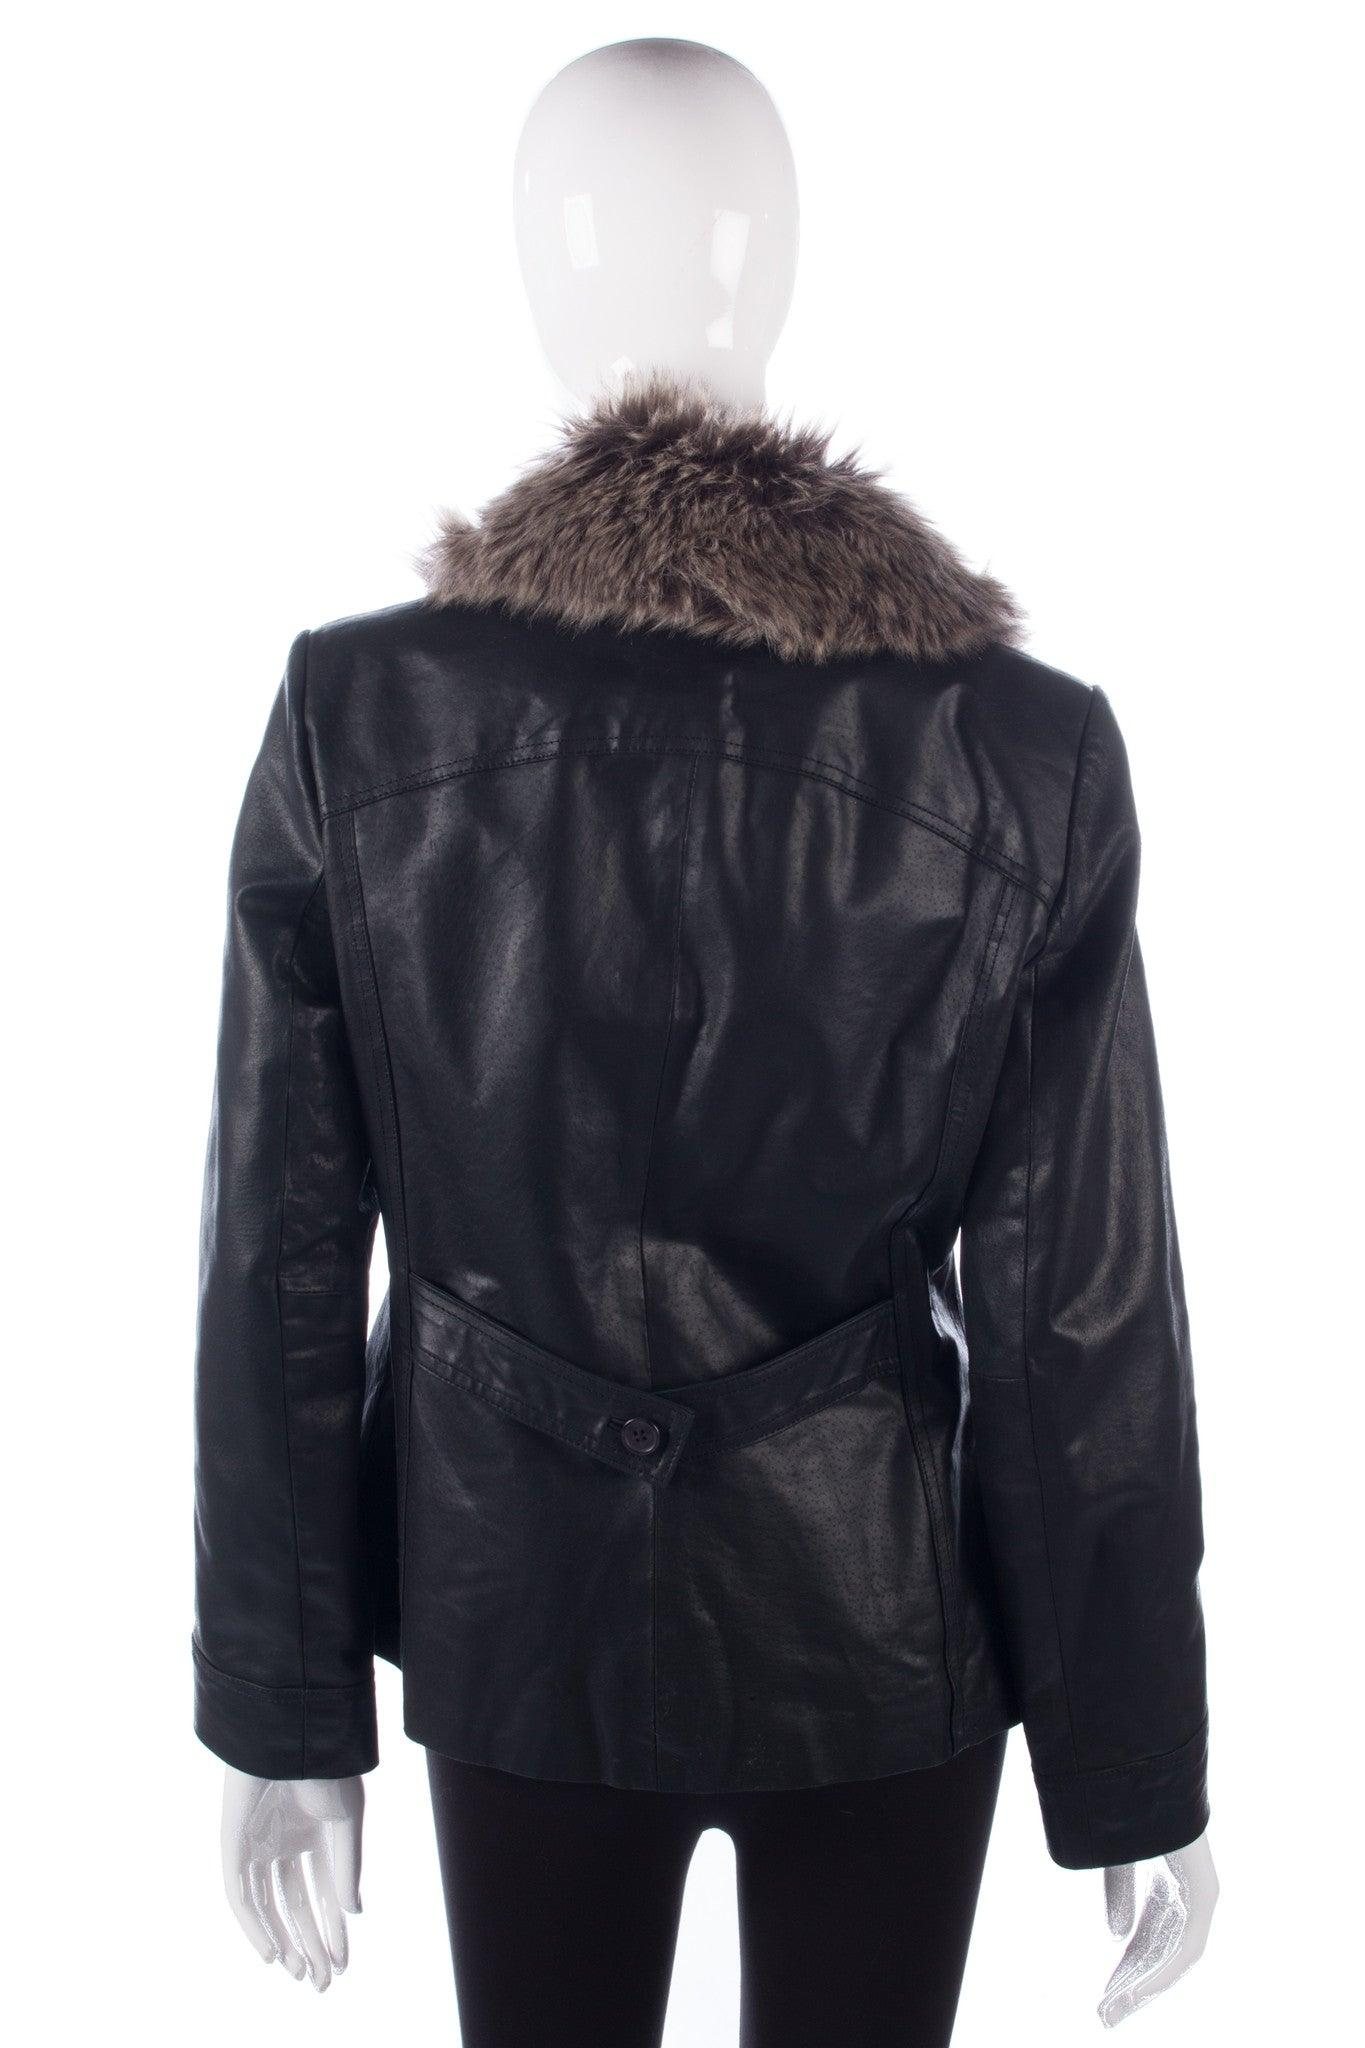 69e674ece Wallace Sacks Leather Jacket with Faux Fur Collar Black UK Size 12 ...